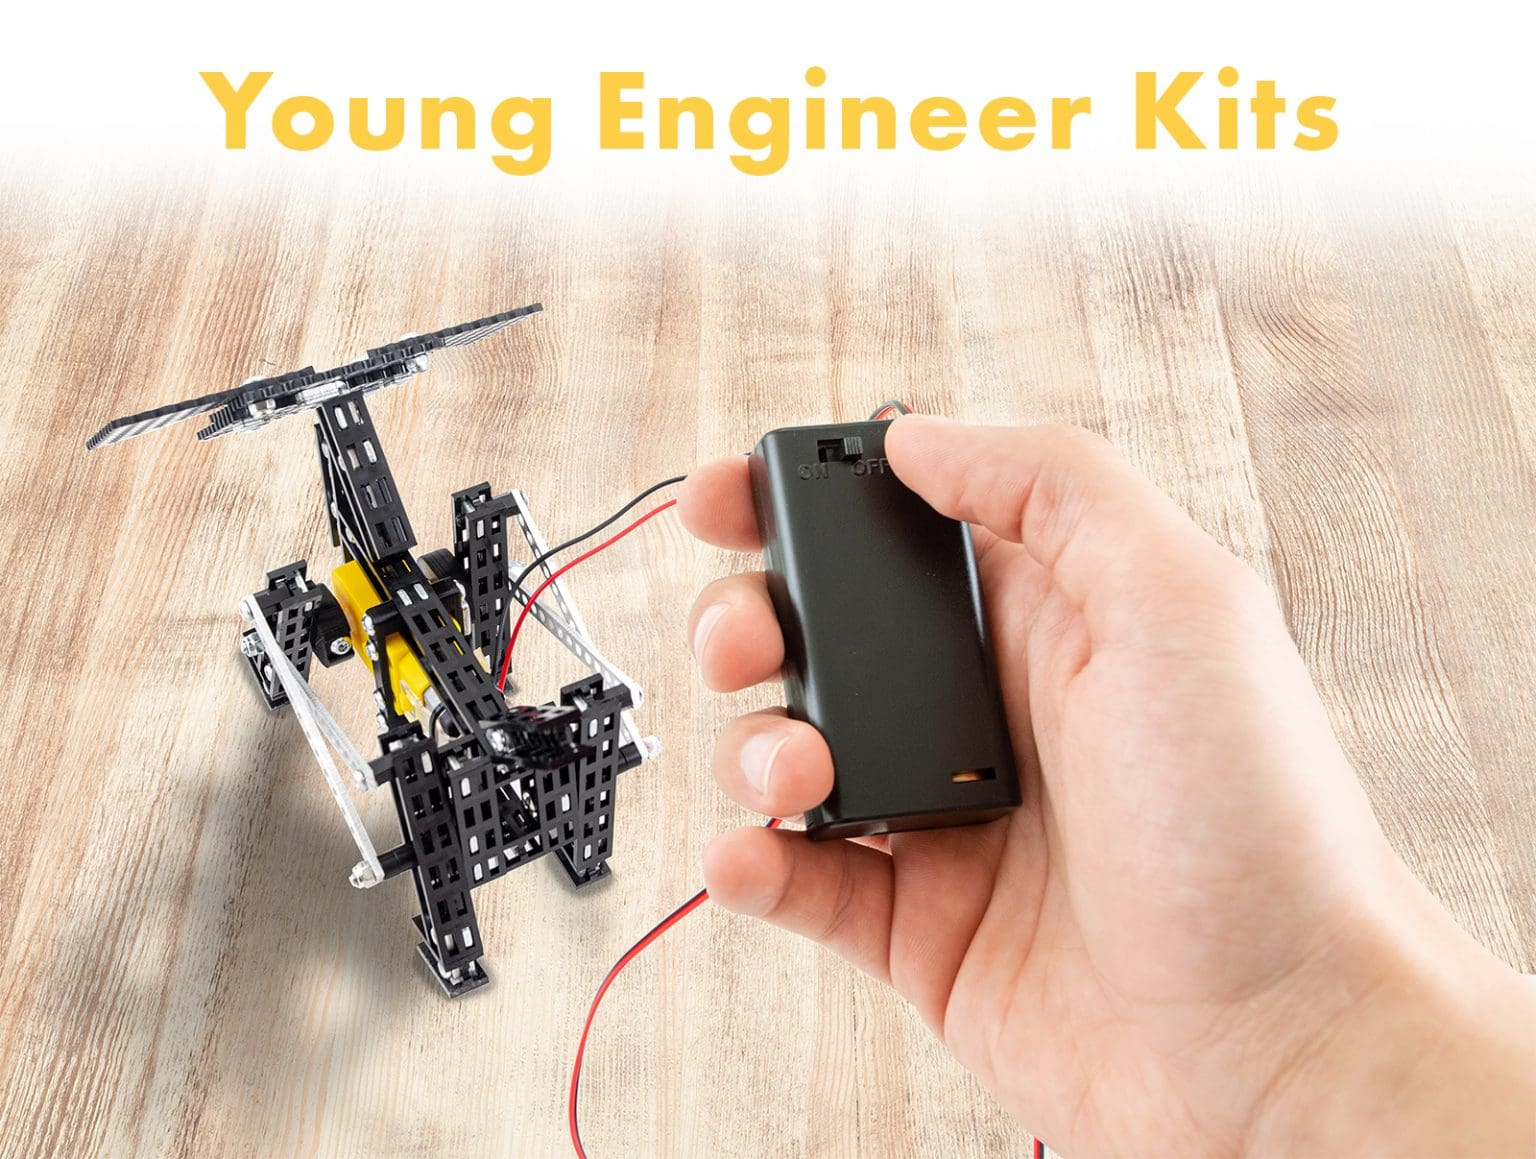 young-engineer-kits-1536x1159